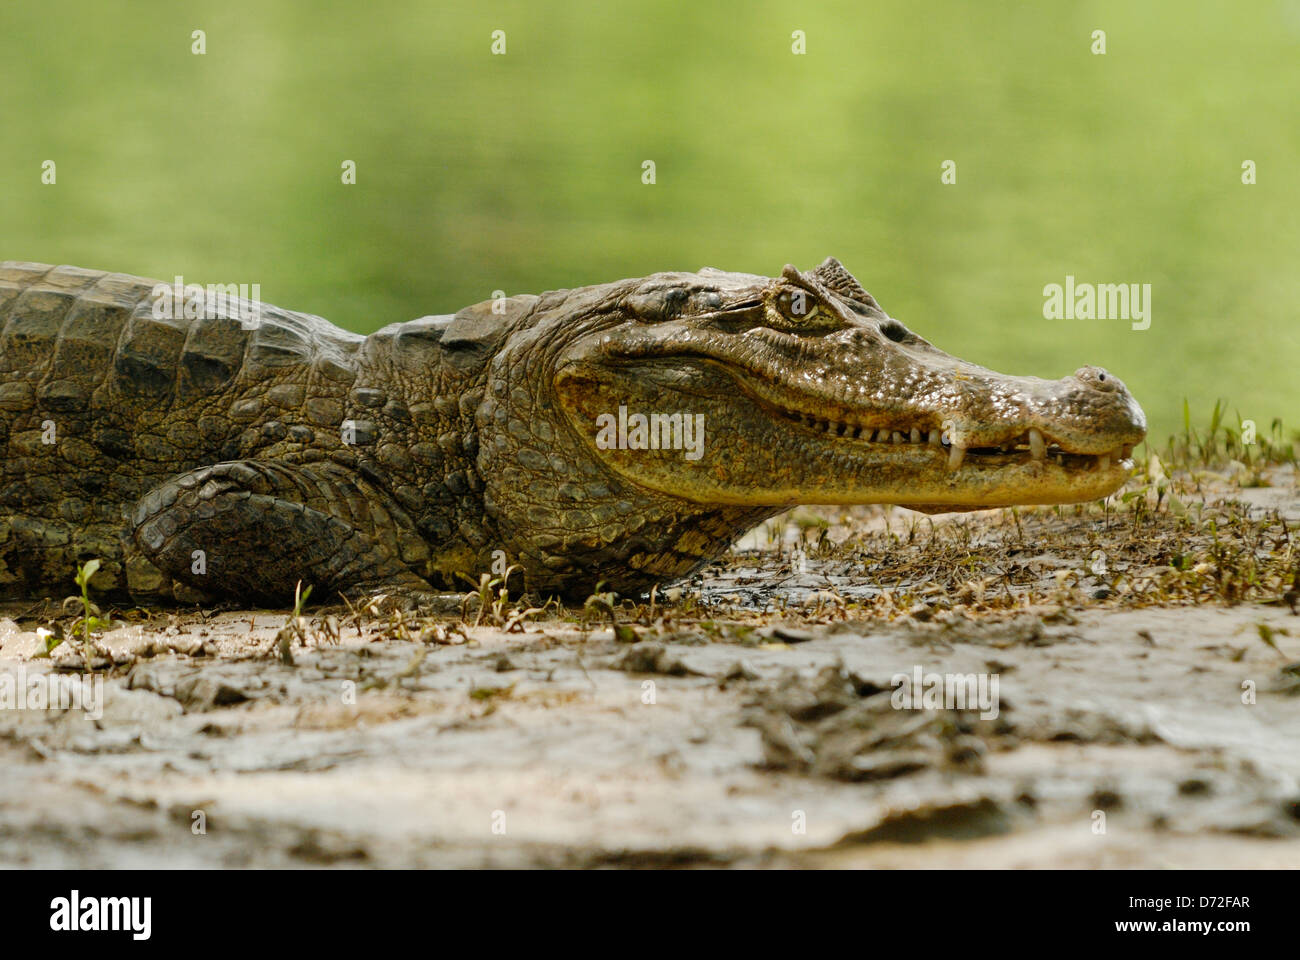 Spectacled Caiman (Caiman crocodilus) in Cano Negro Wildlife Refuge, Costa Rica - Stock Image